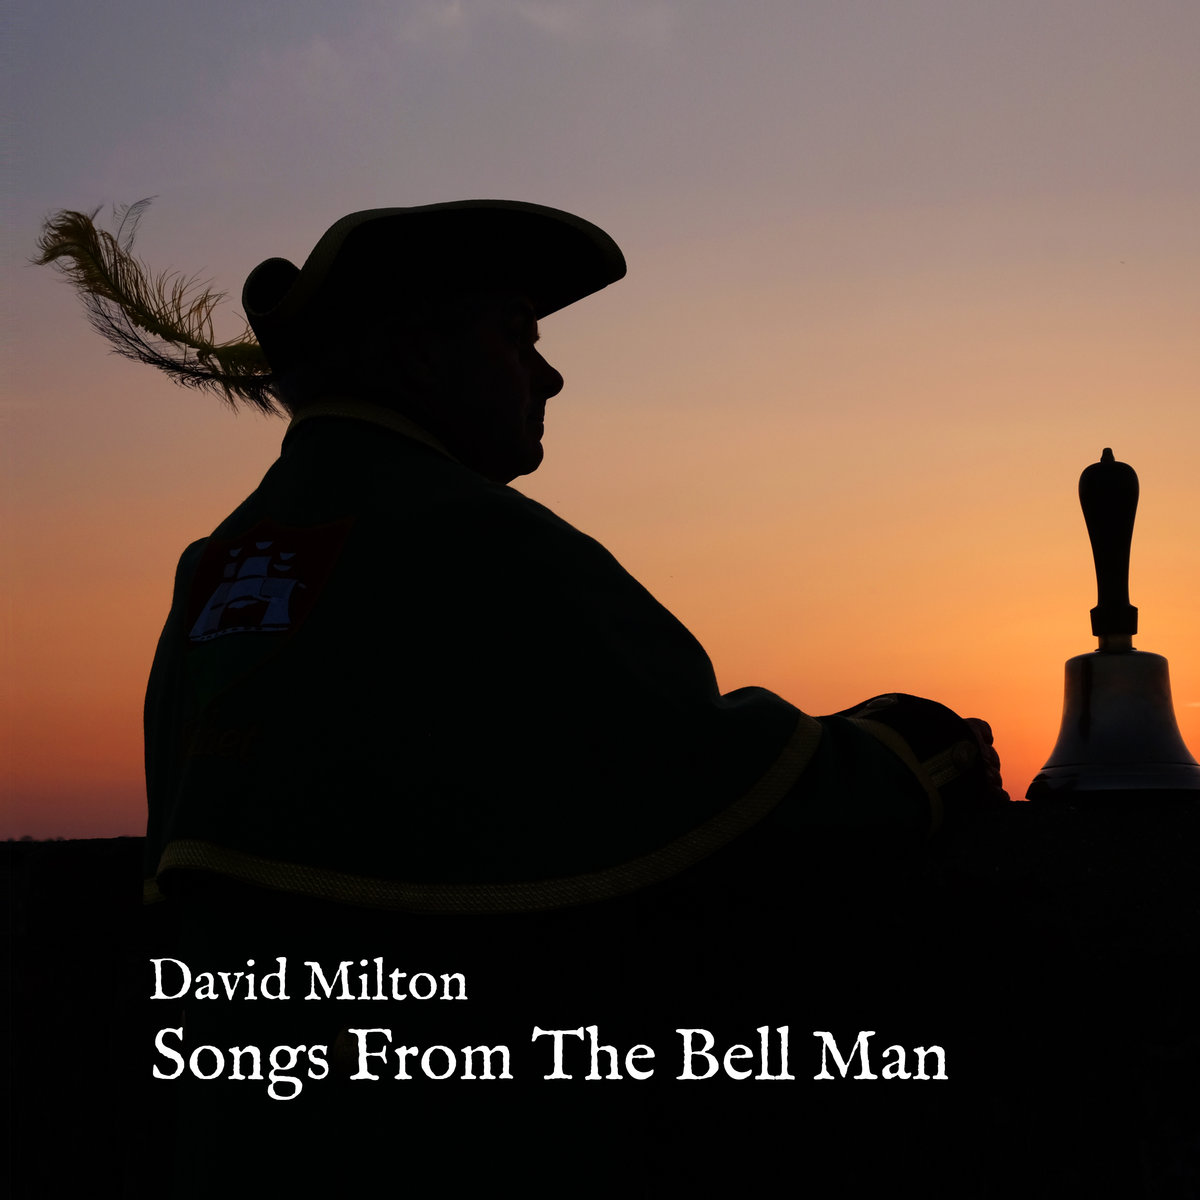 David Milton bell man songs art.jpg